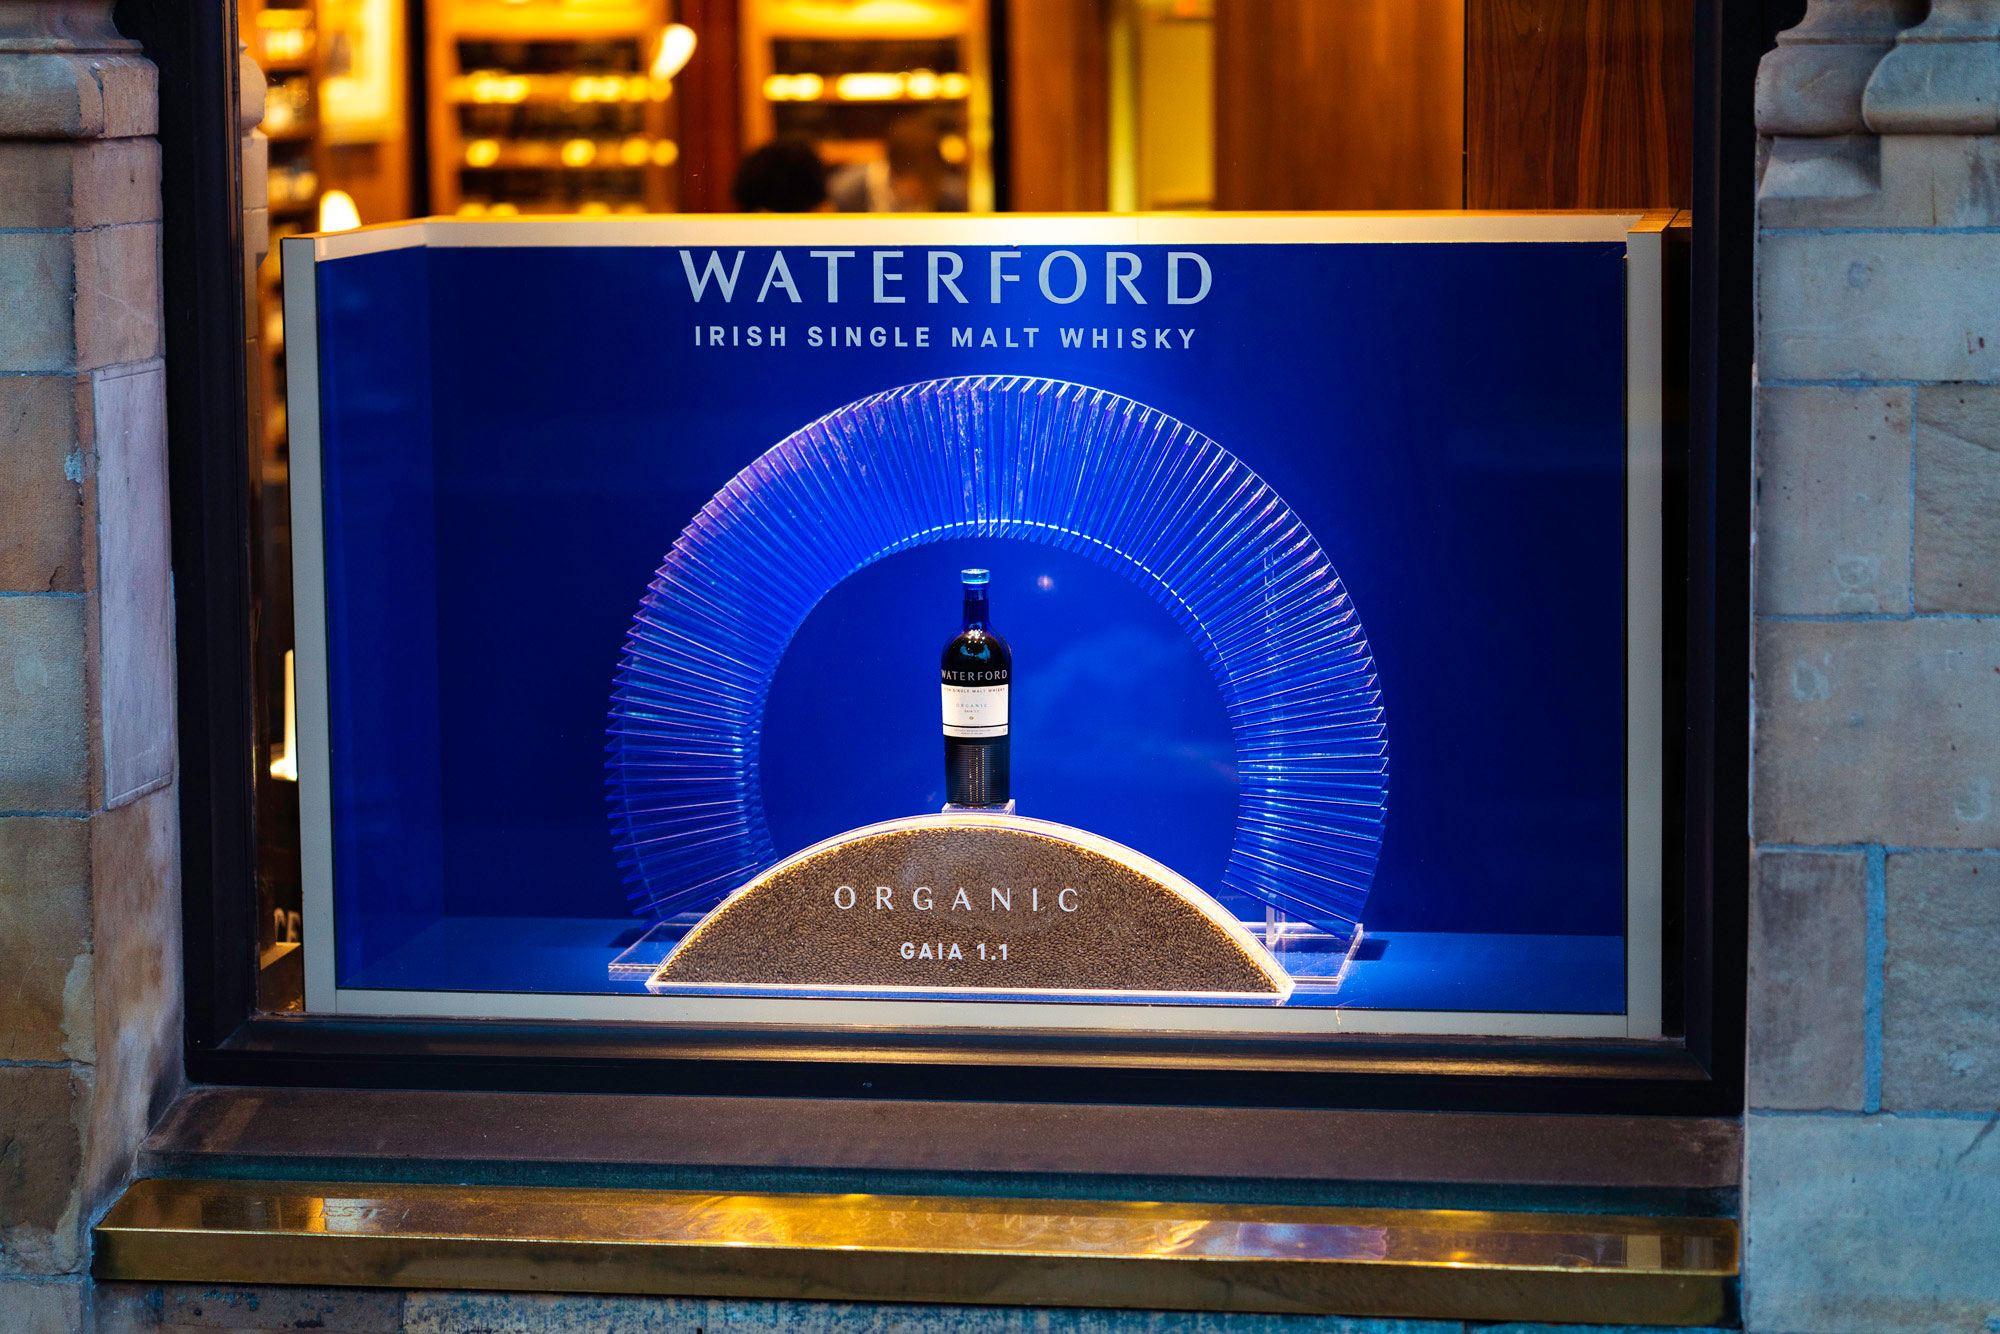 Cover image: Waterford: Gaia Organic Retail Display